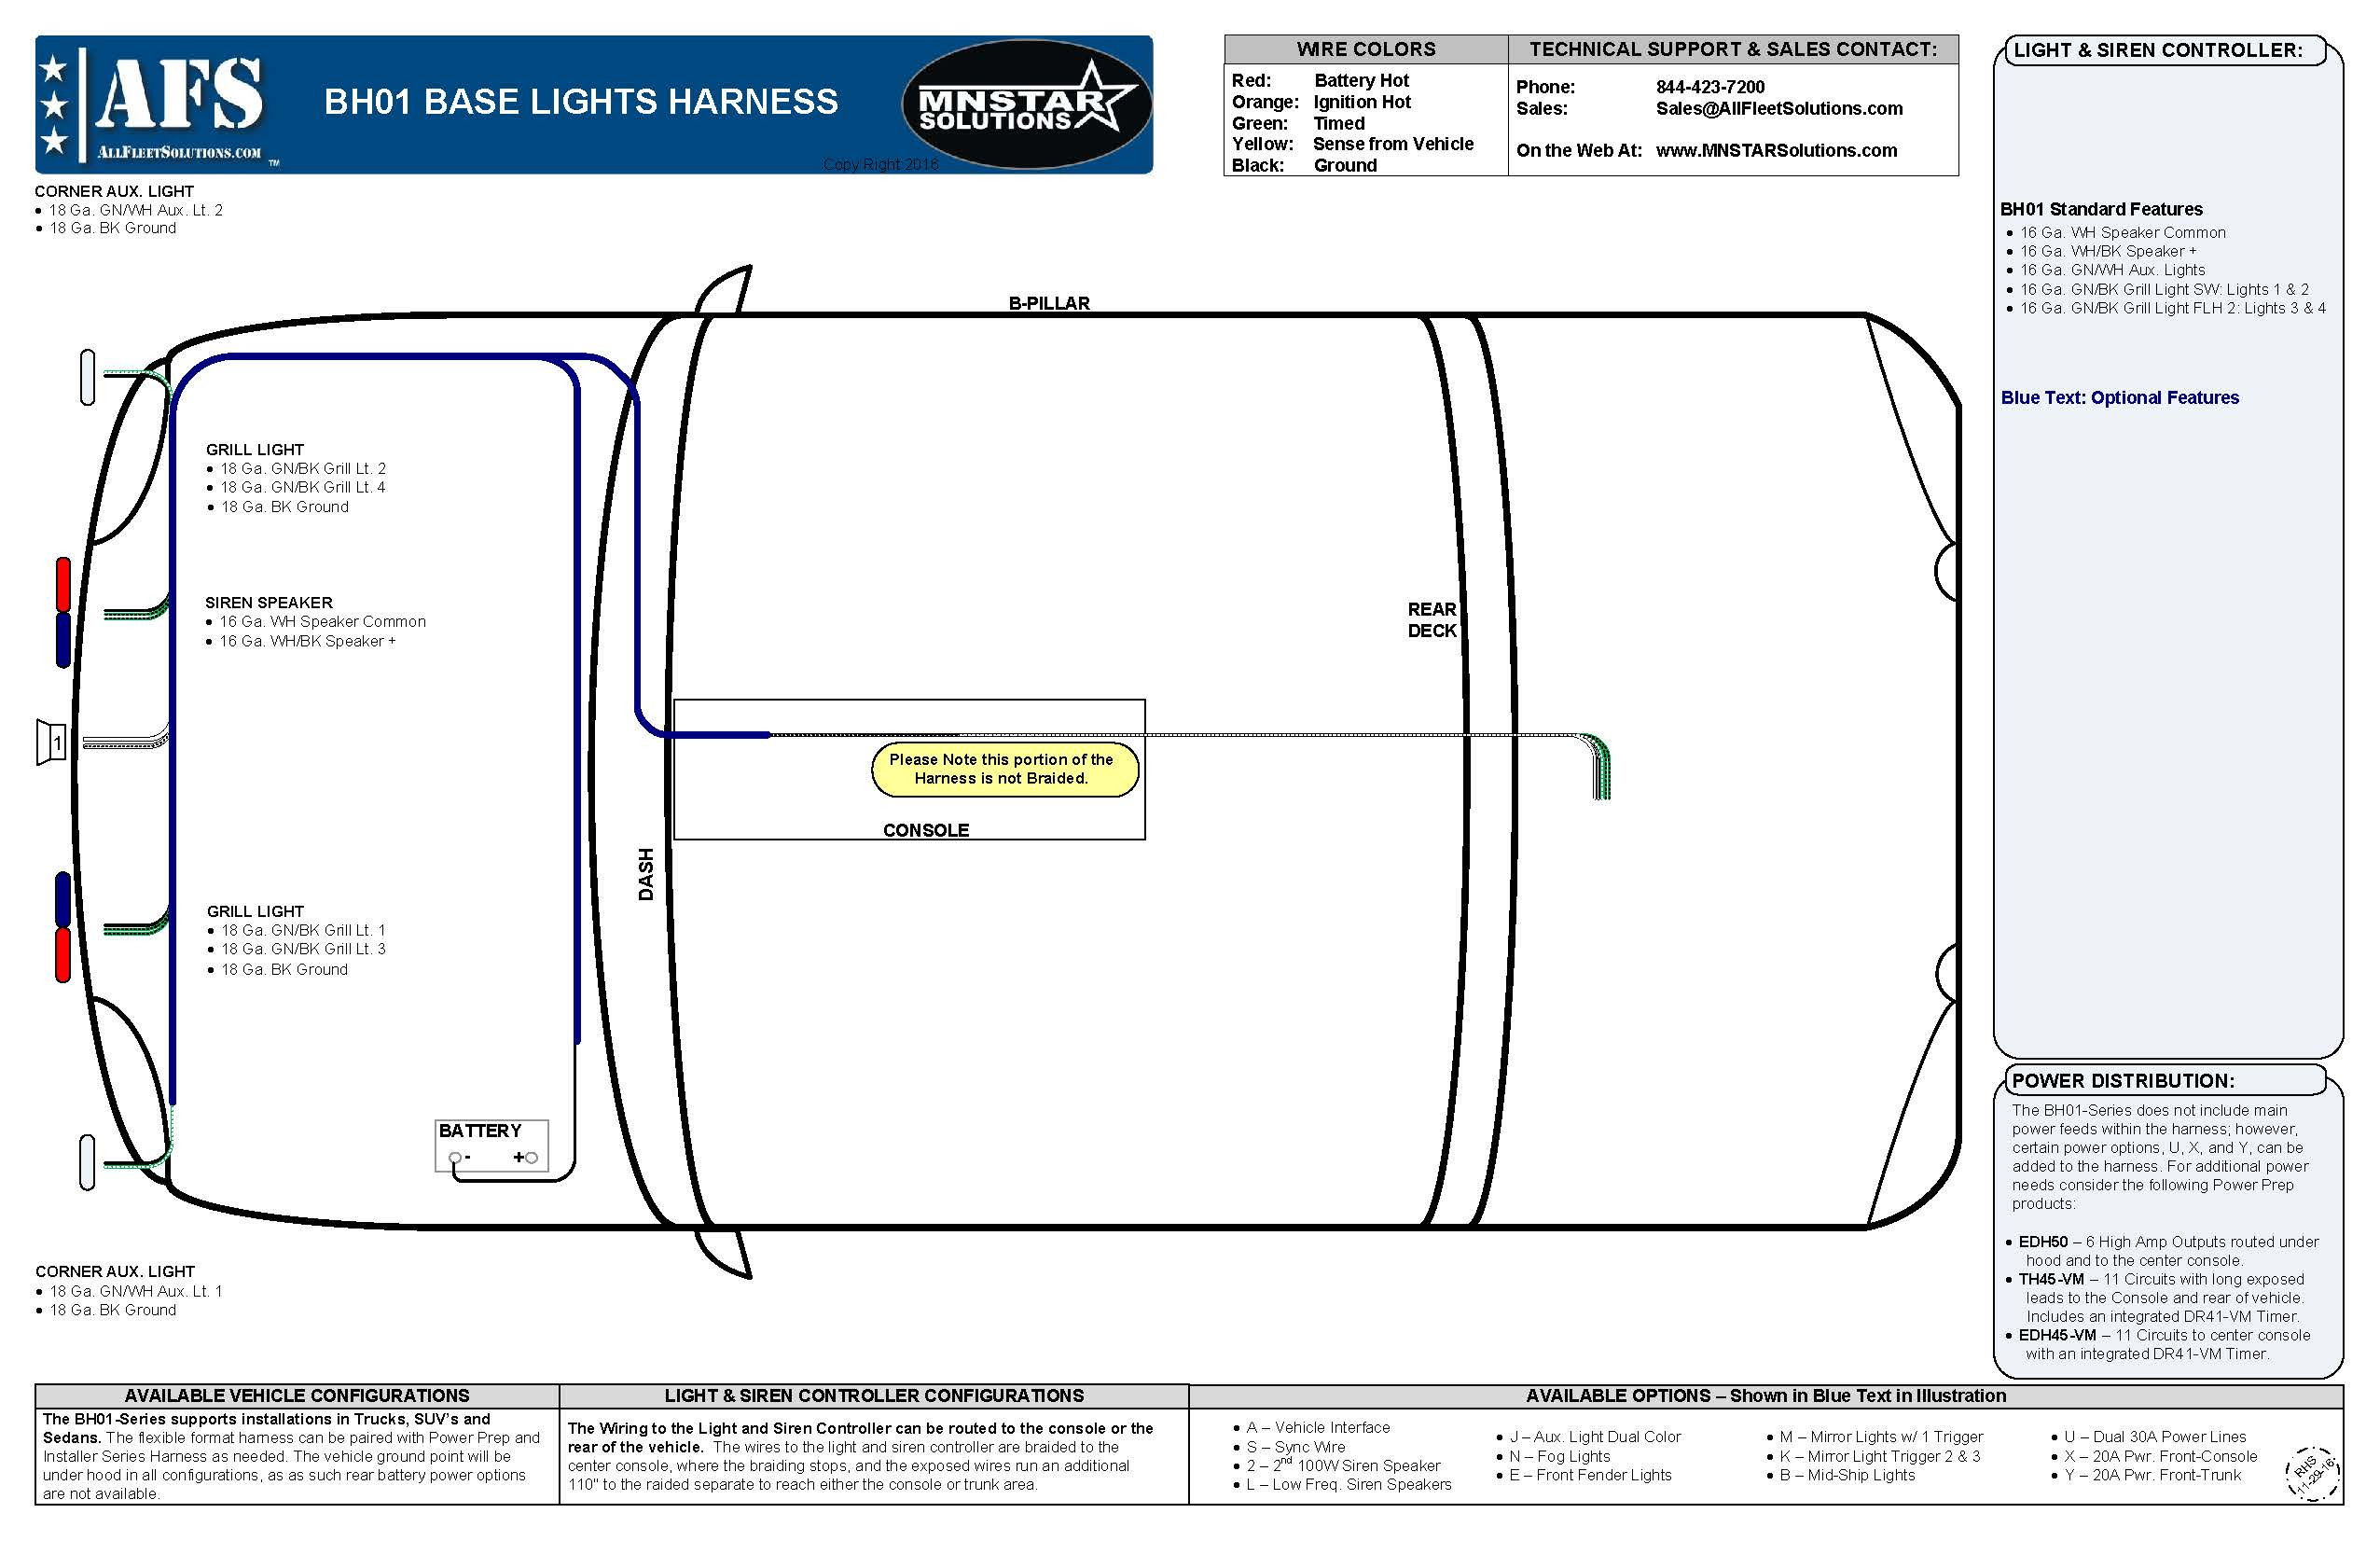 Whats Right For You All Fleet Solutions Stop Lights 4 Wire Wiring Harness The Control Wires Run An Additional 107 And Can Be Cut To Length Ah Series Accessory Harnesses Utilized Lighting At Rear Of Vehicle